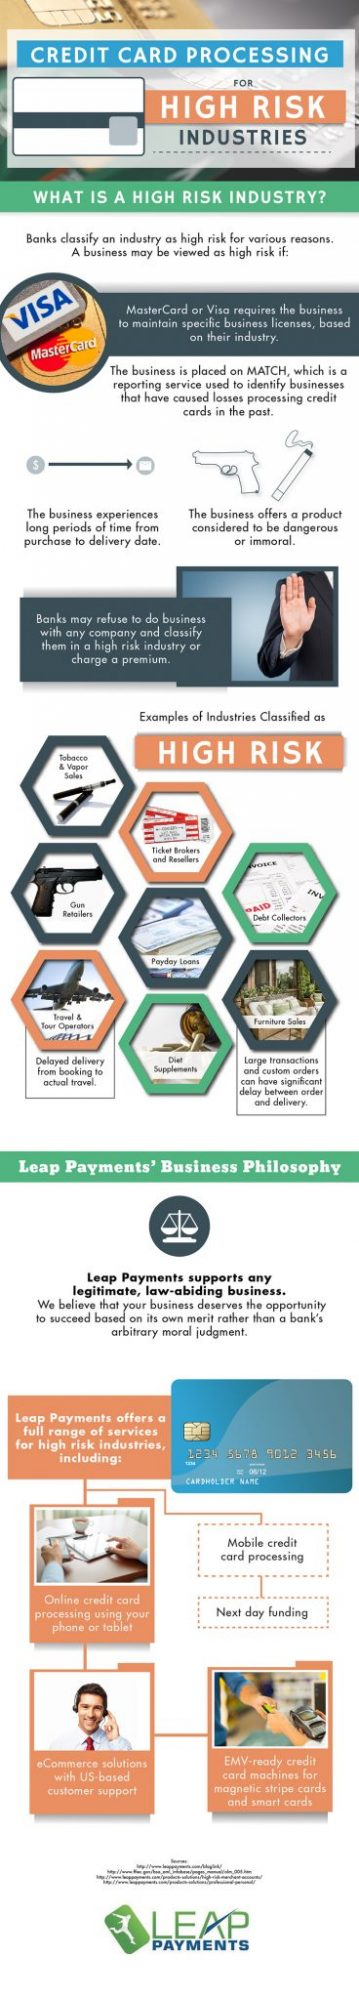 Credit card processing for high risk industries leap payments credit colourmoves